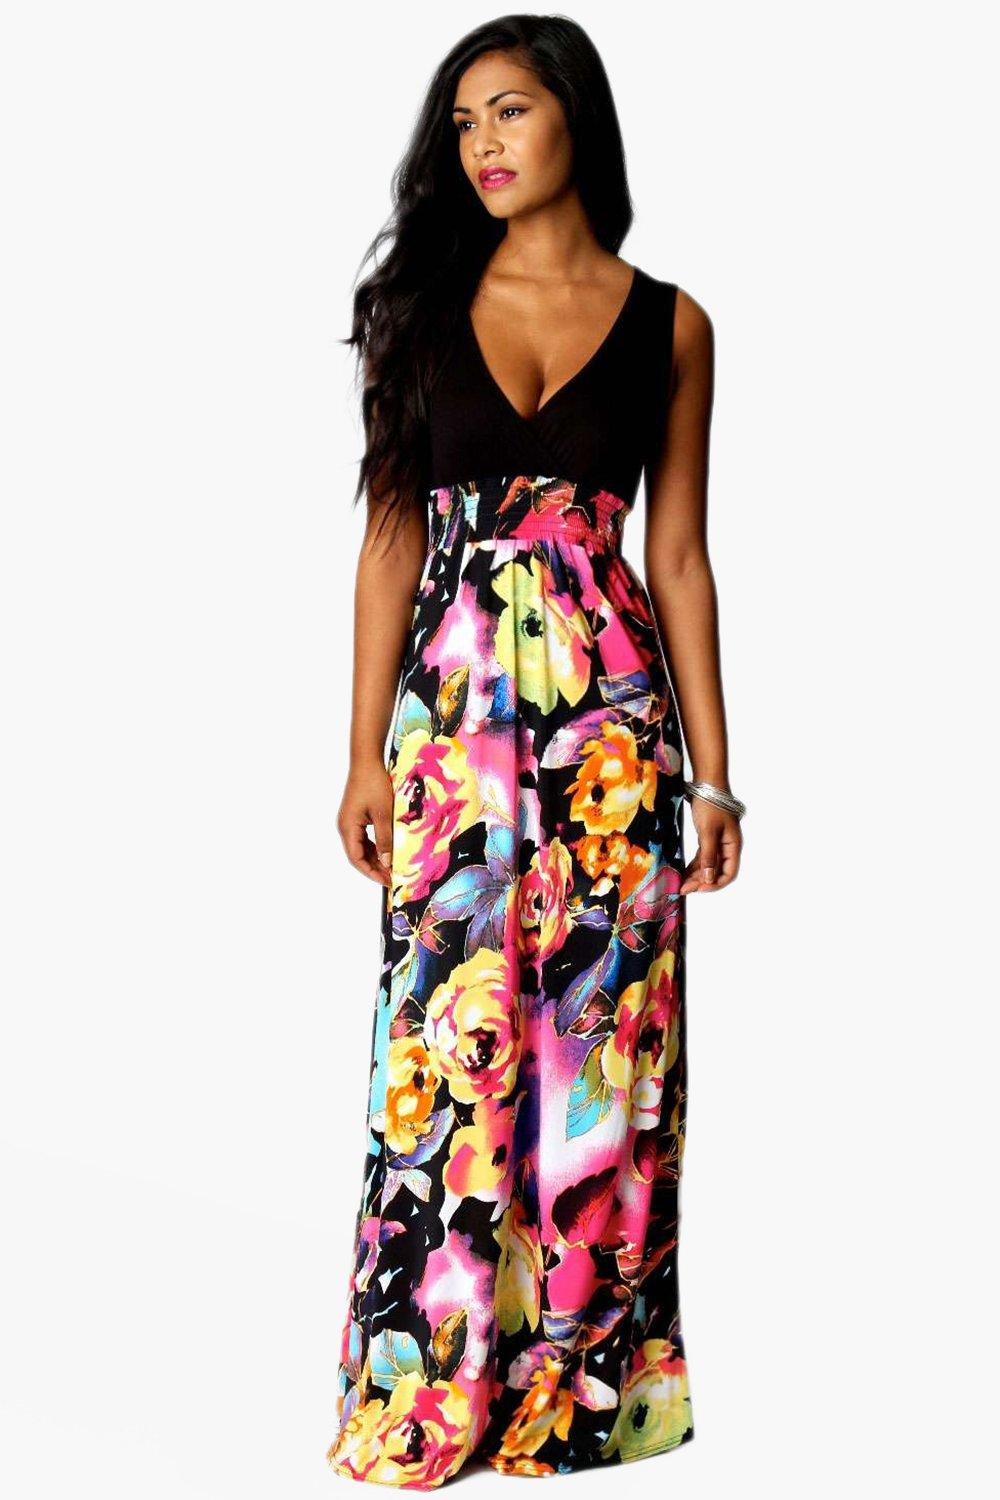 Summer Dresses | Holiday Dresses & Summer Maxis | Boohoo